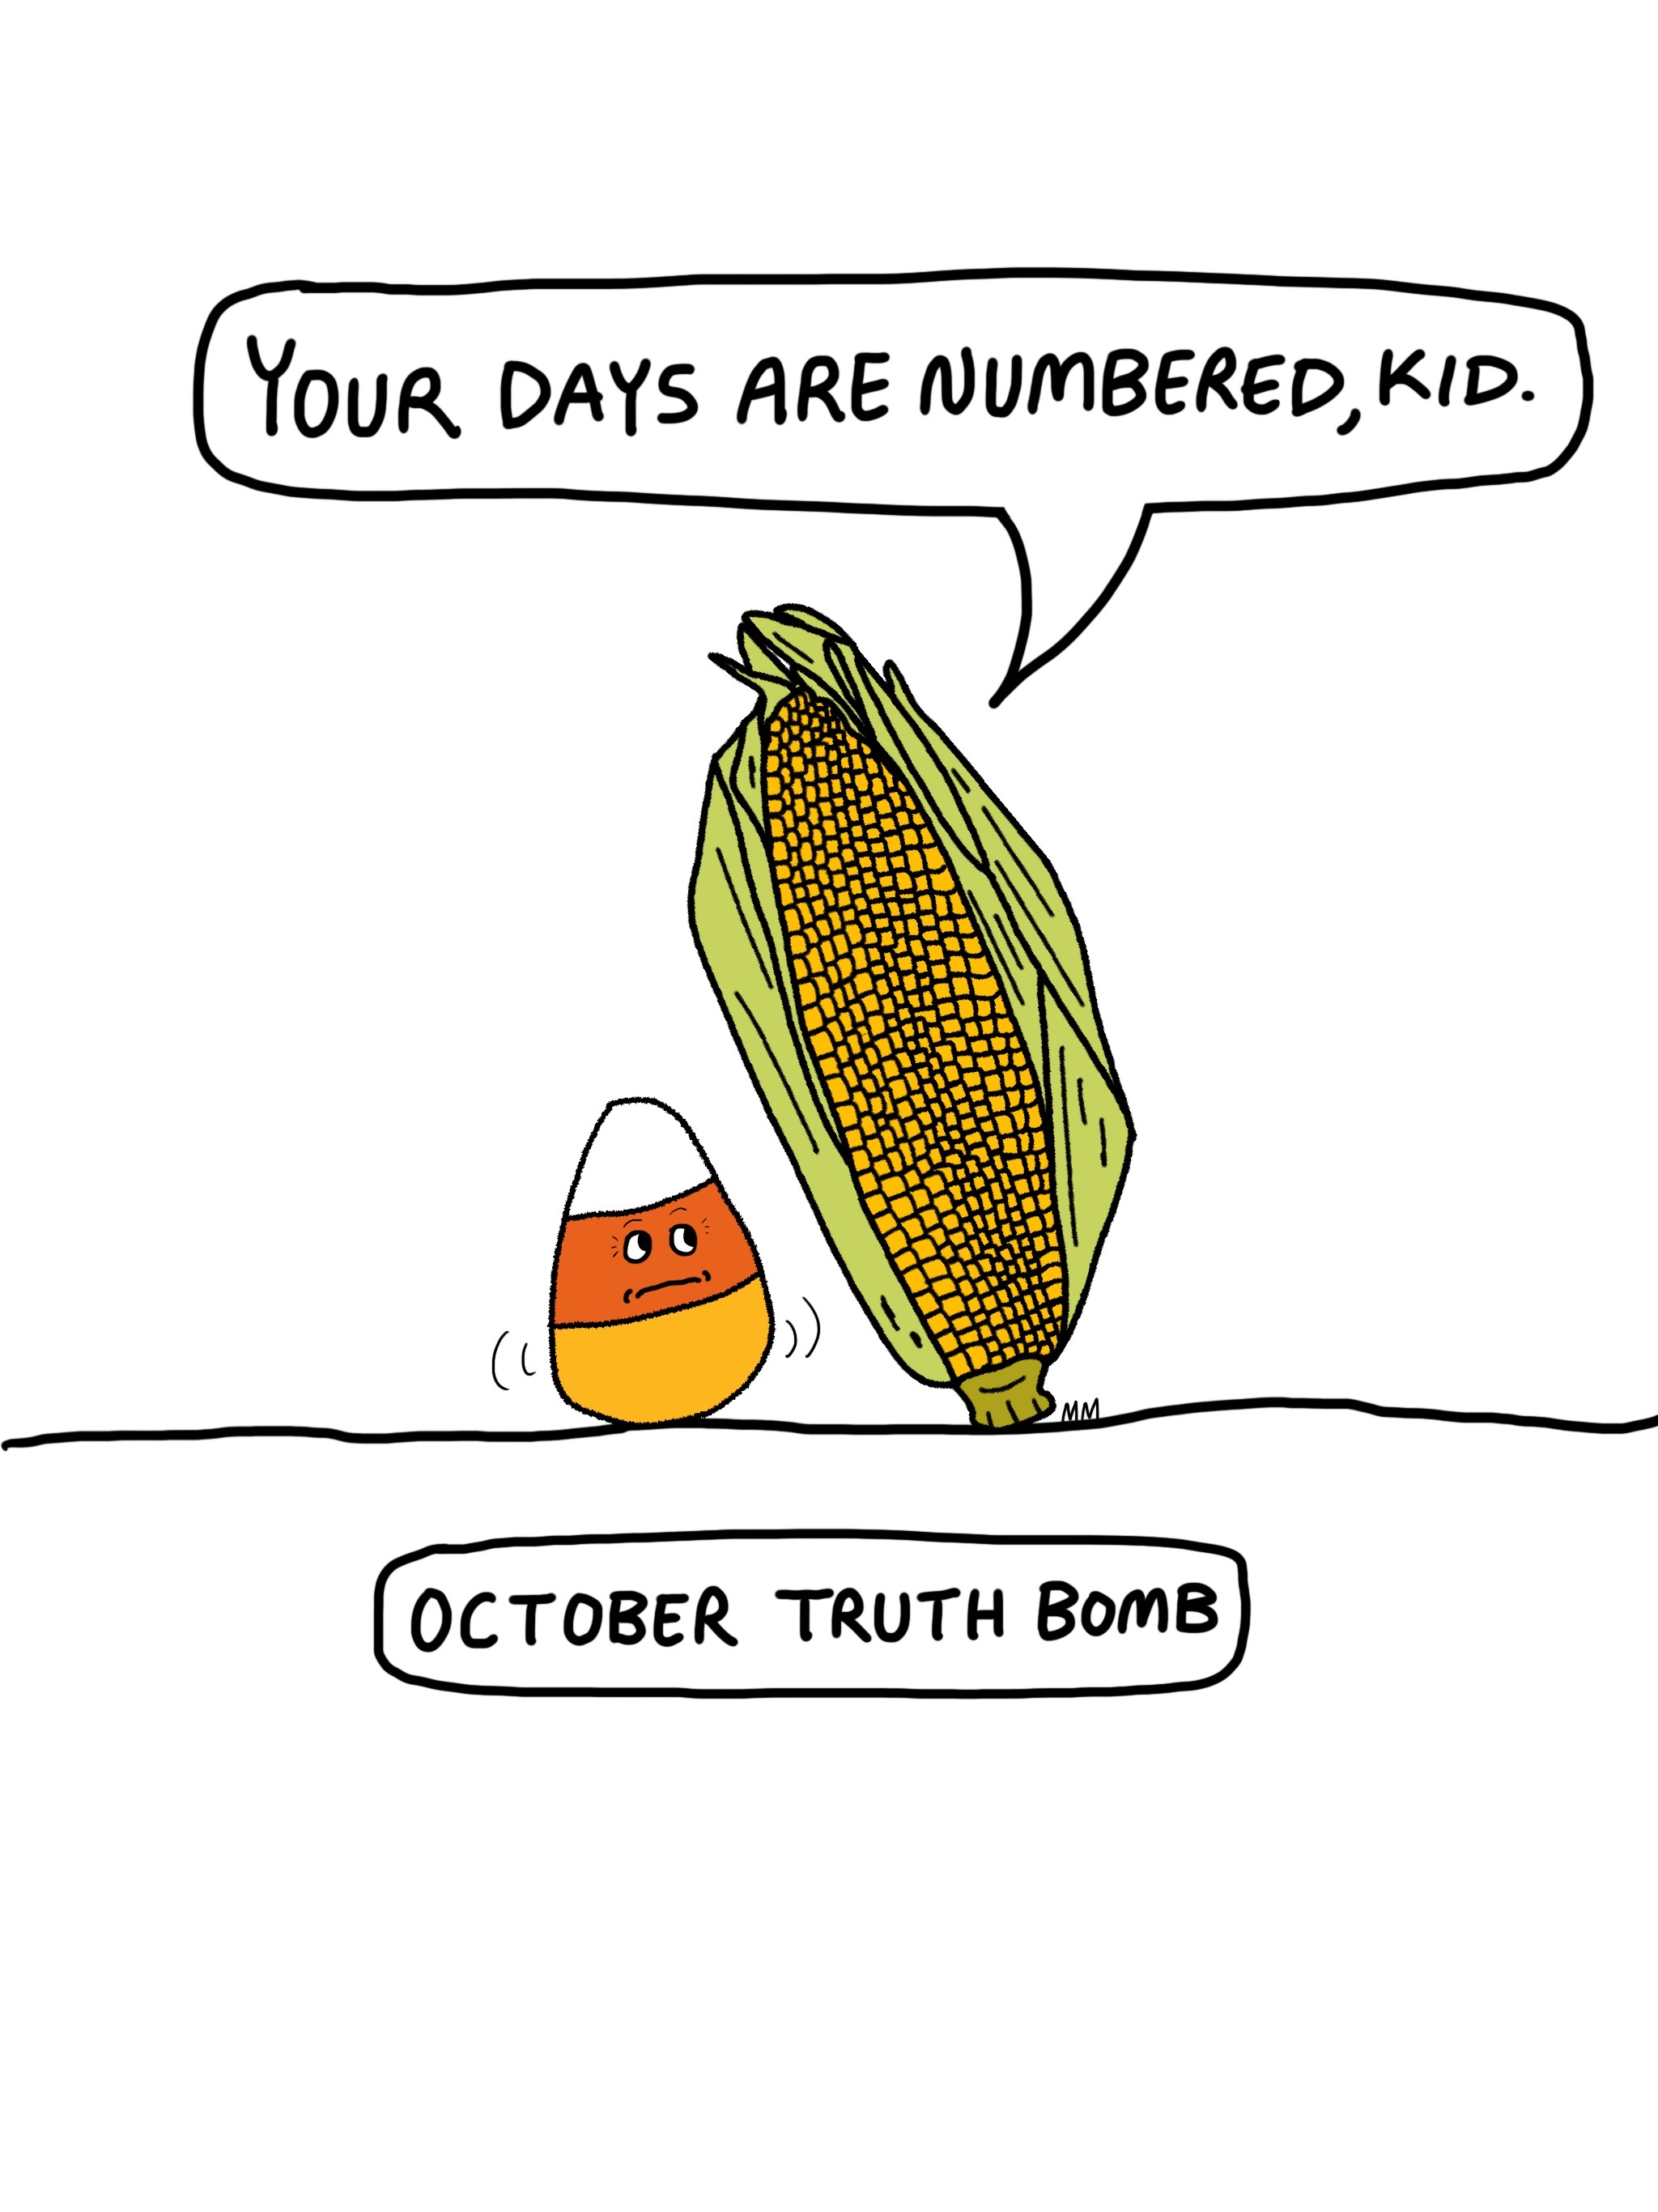 October Truth Bomb